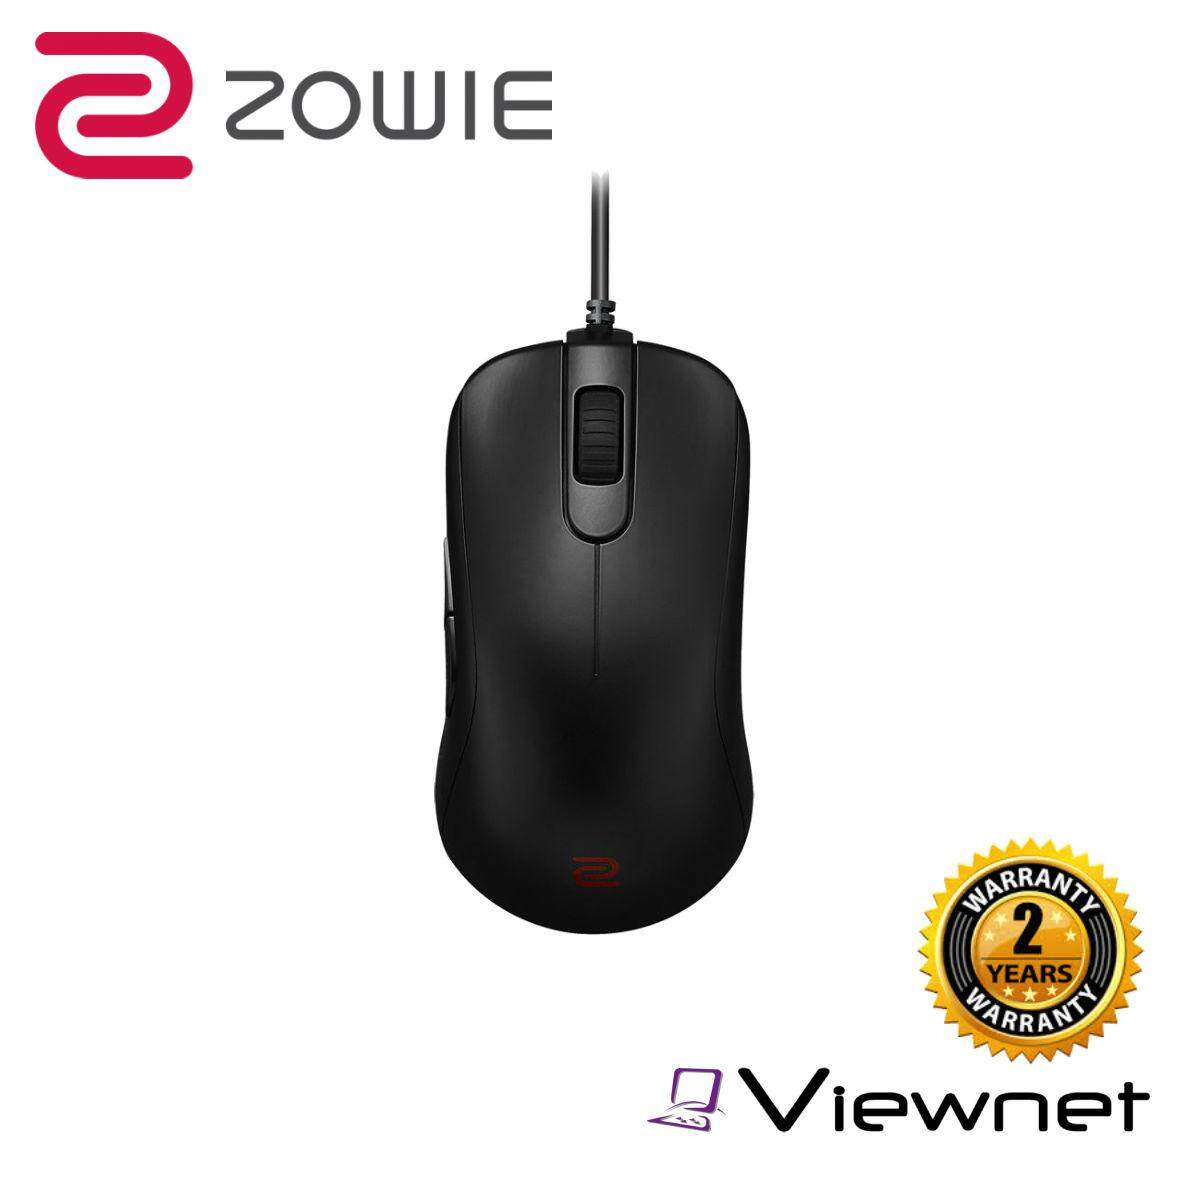 Zowie S2 3200 DPI Wired Black Gaming Mouse (9H.N0HBB.A2E)